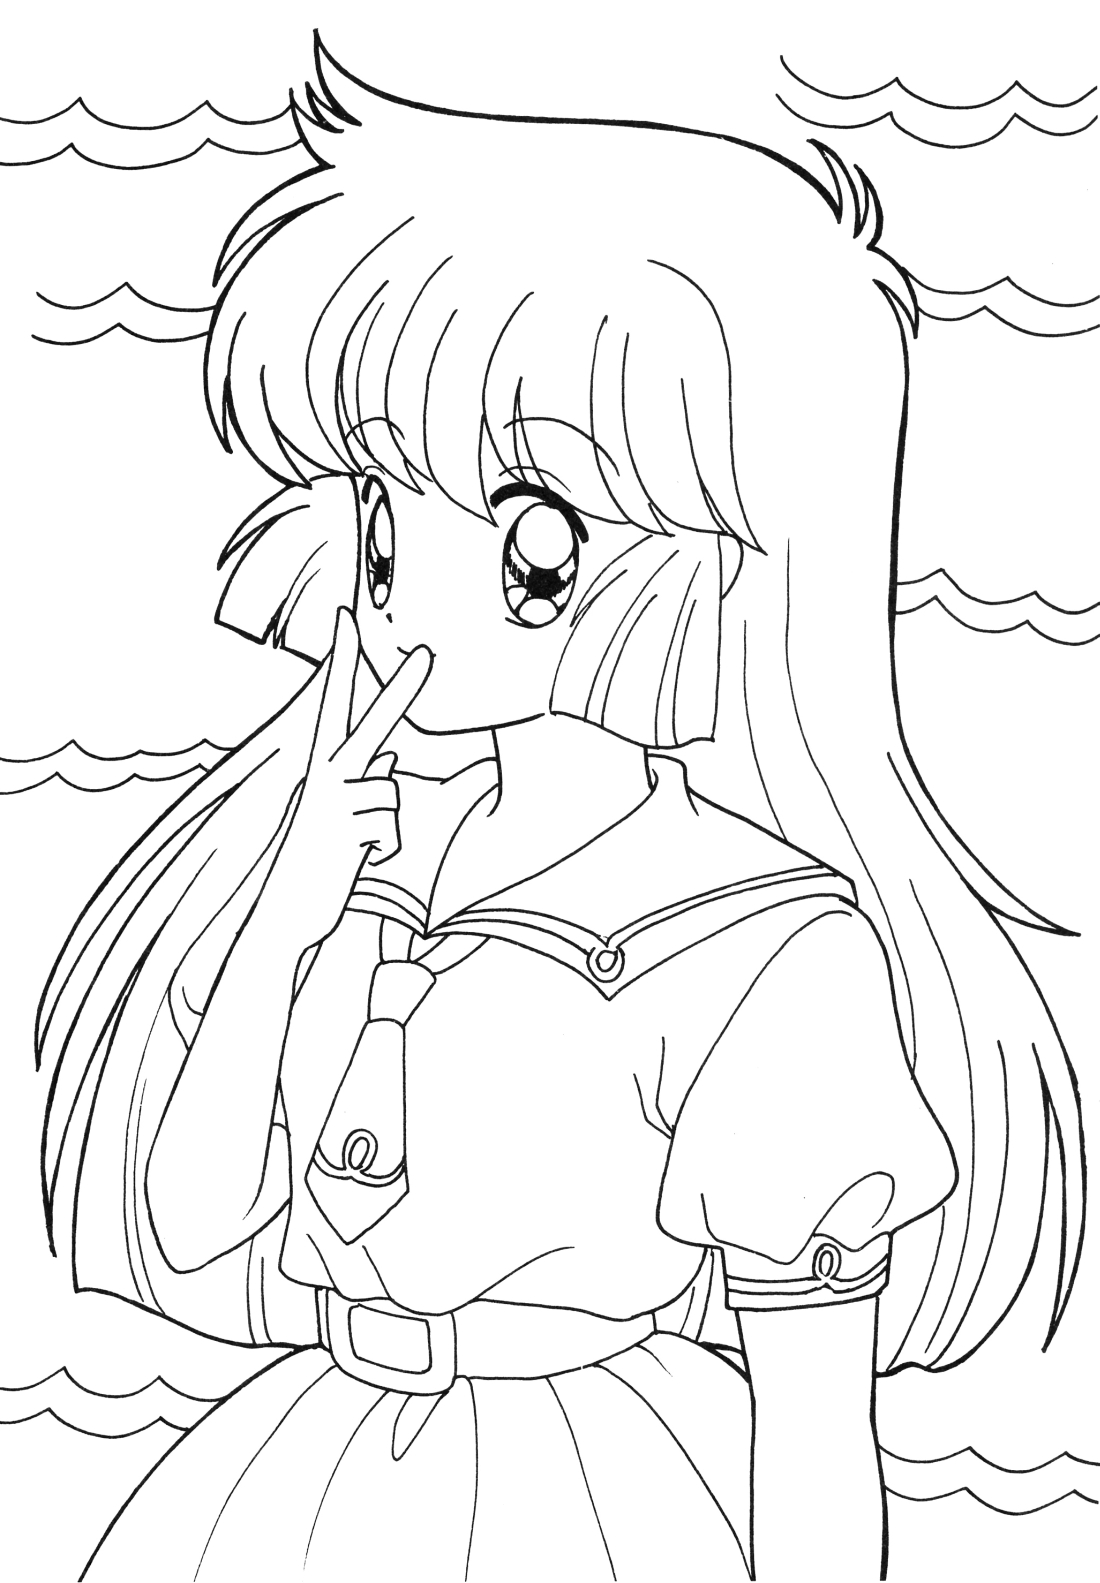 Anime coloring pages best coloring pages for kids for Online anime coloring pages